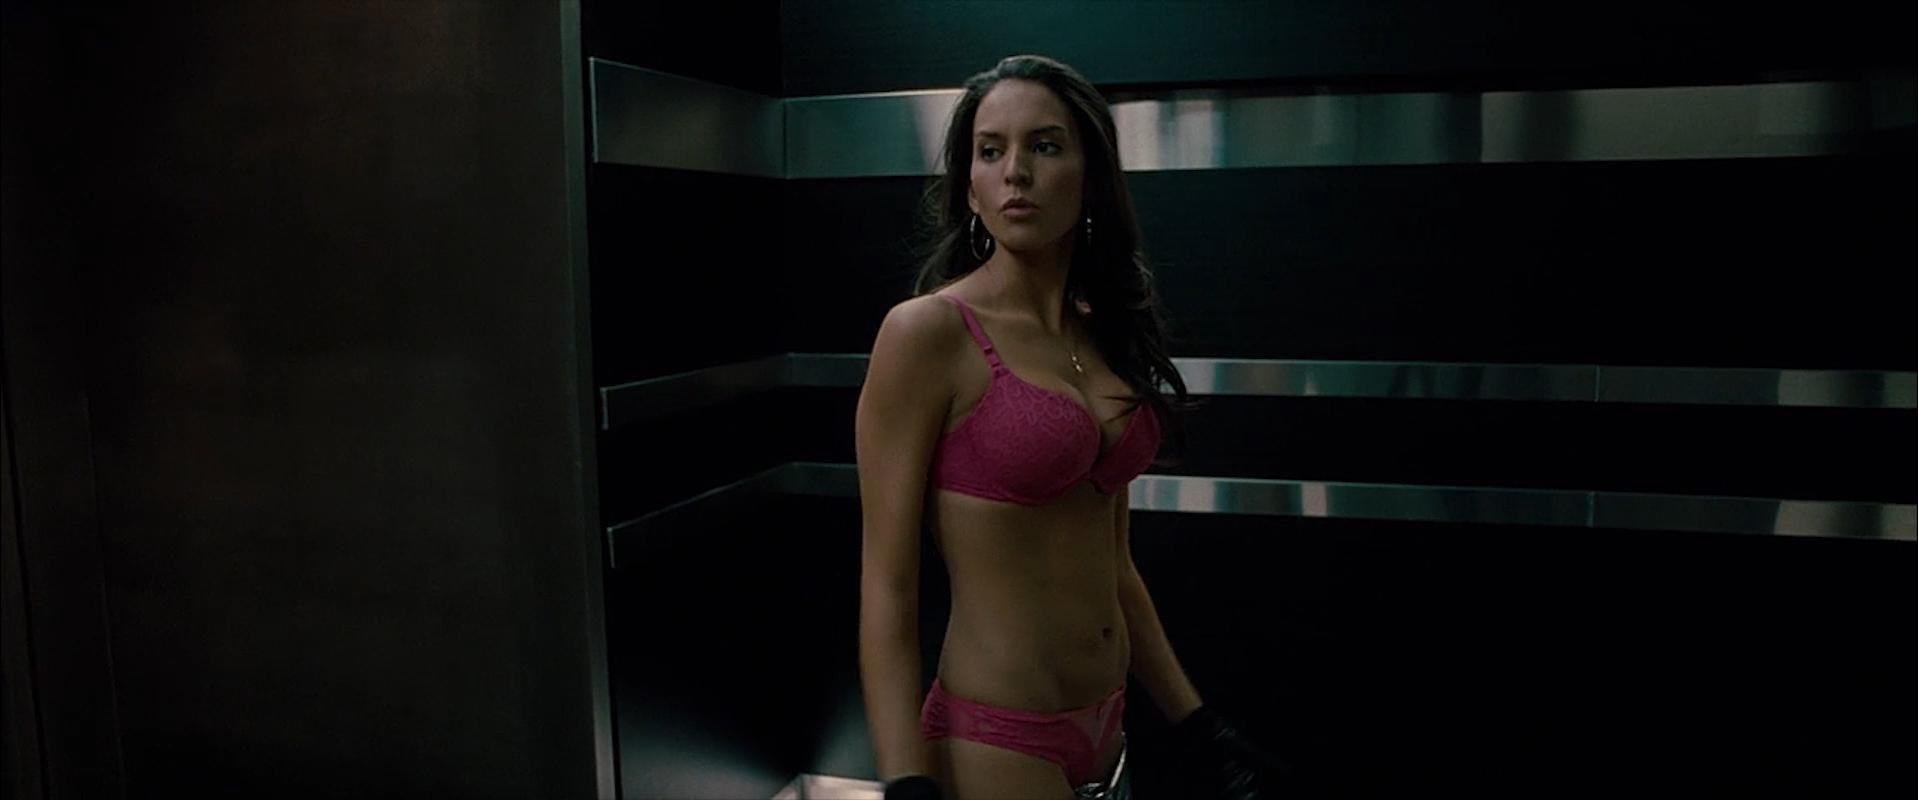 Elizabeth Banks sexy, Genesis Rodriguez sexy - Man on a Ledge (2012)